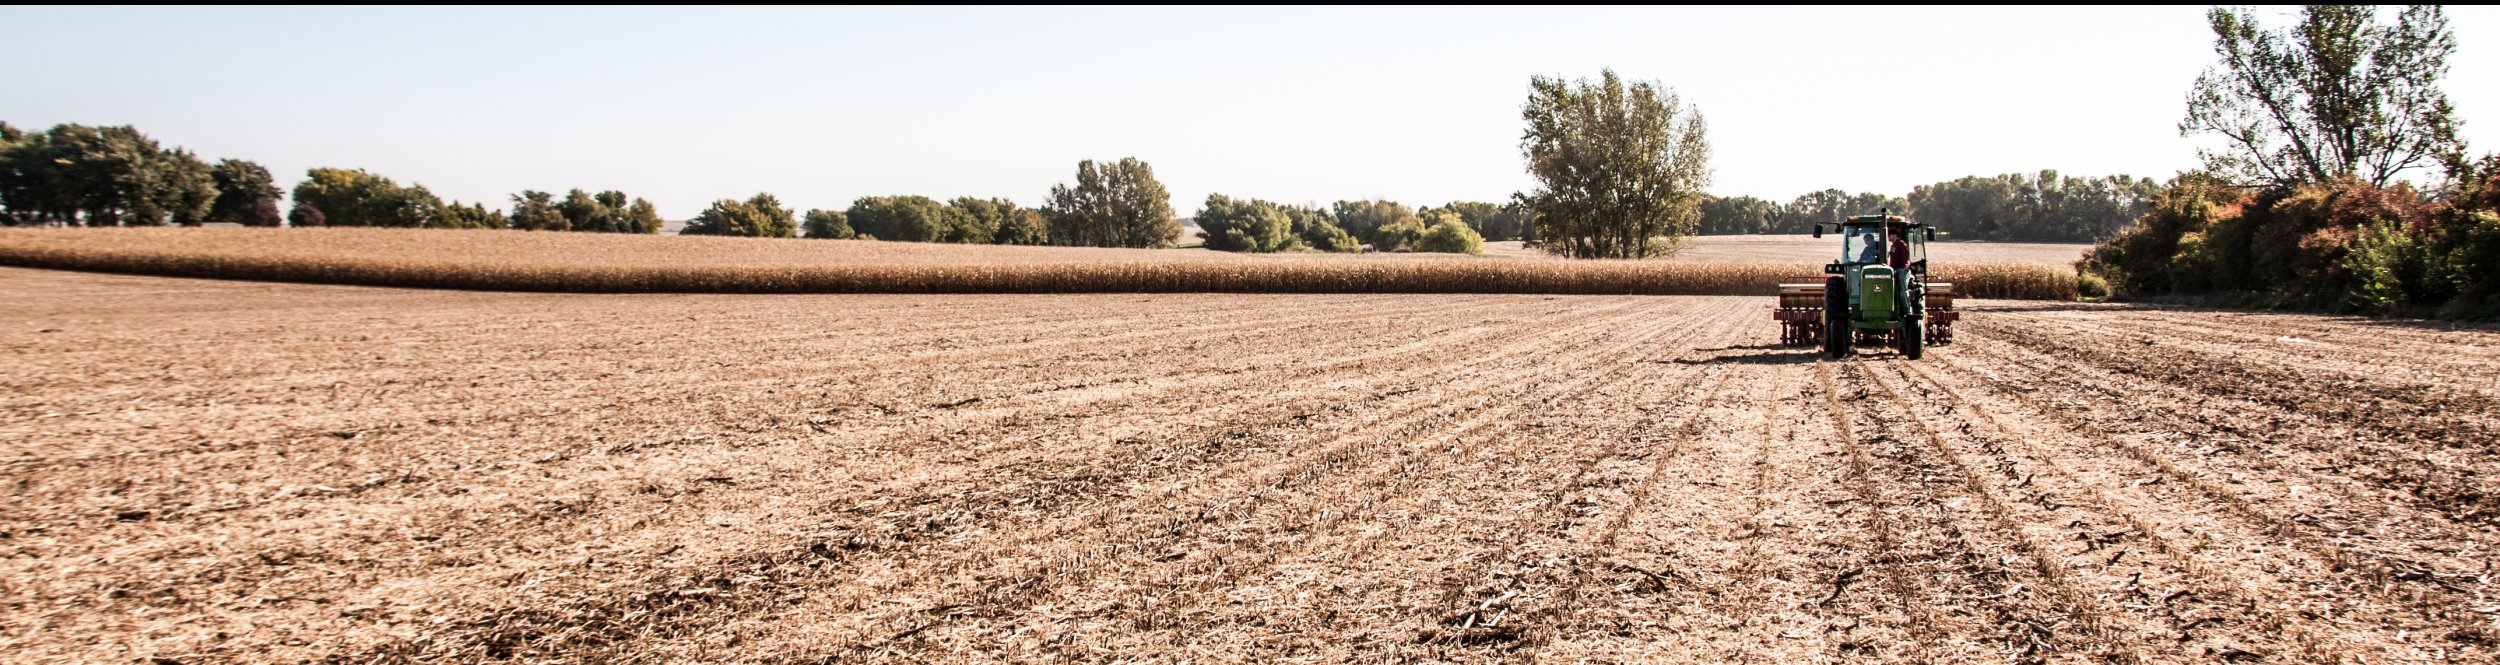 A tractor drives through an empty field.